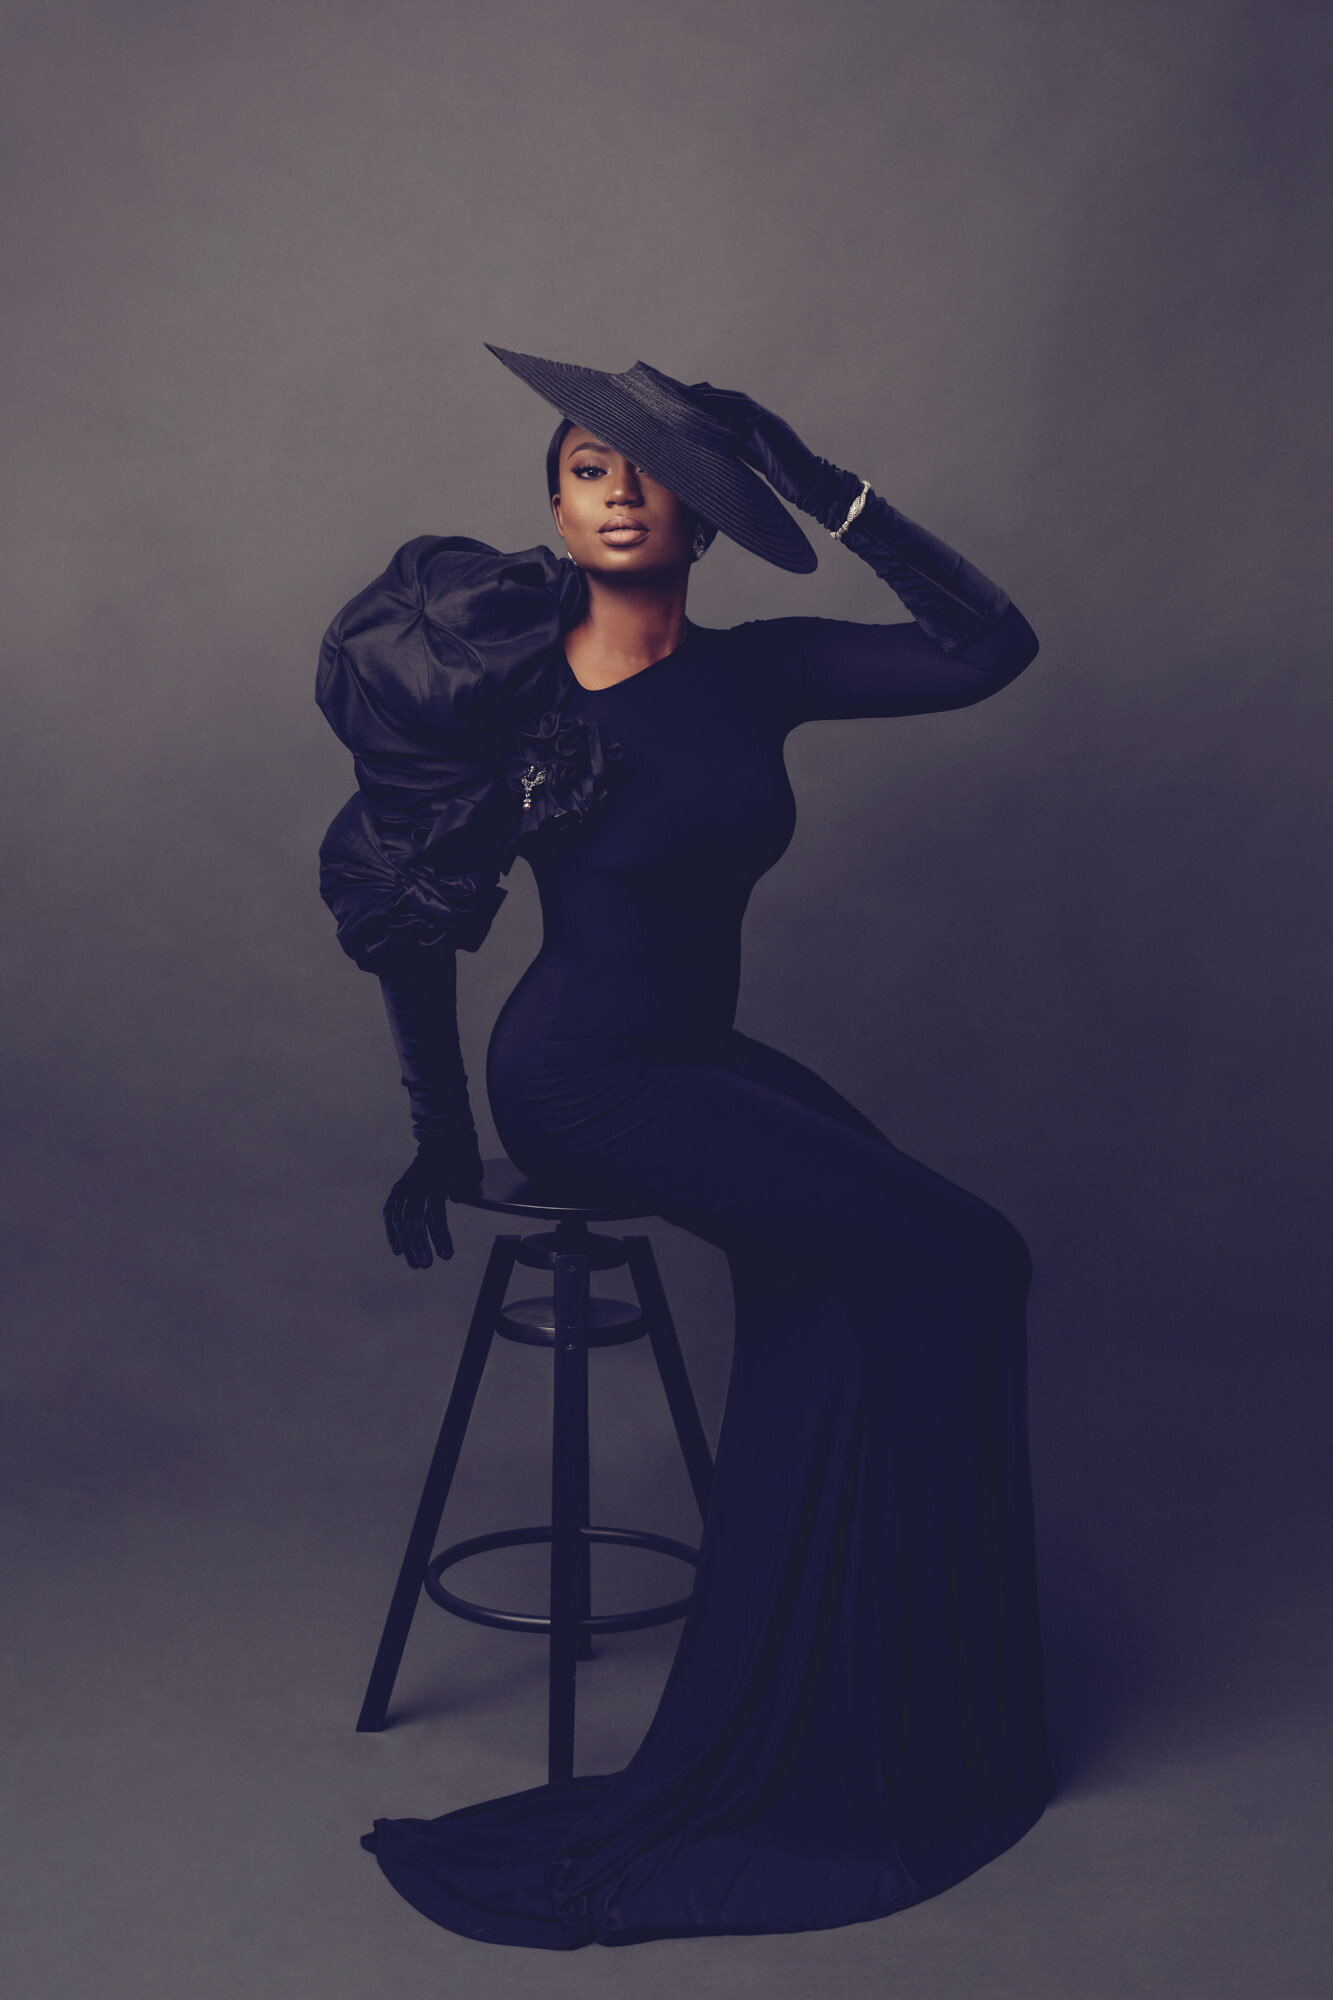 Luxury portrait of a woman in a black gown, sitting on a black stool, looking camera center. Houston, TX.